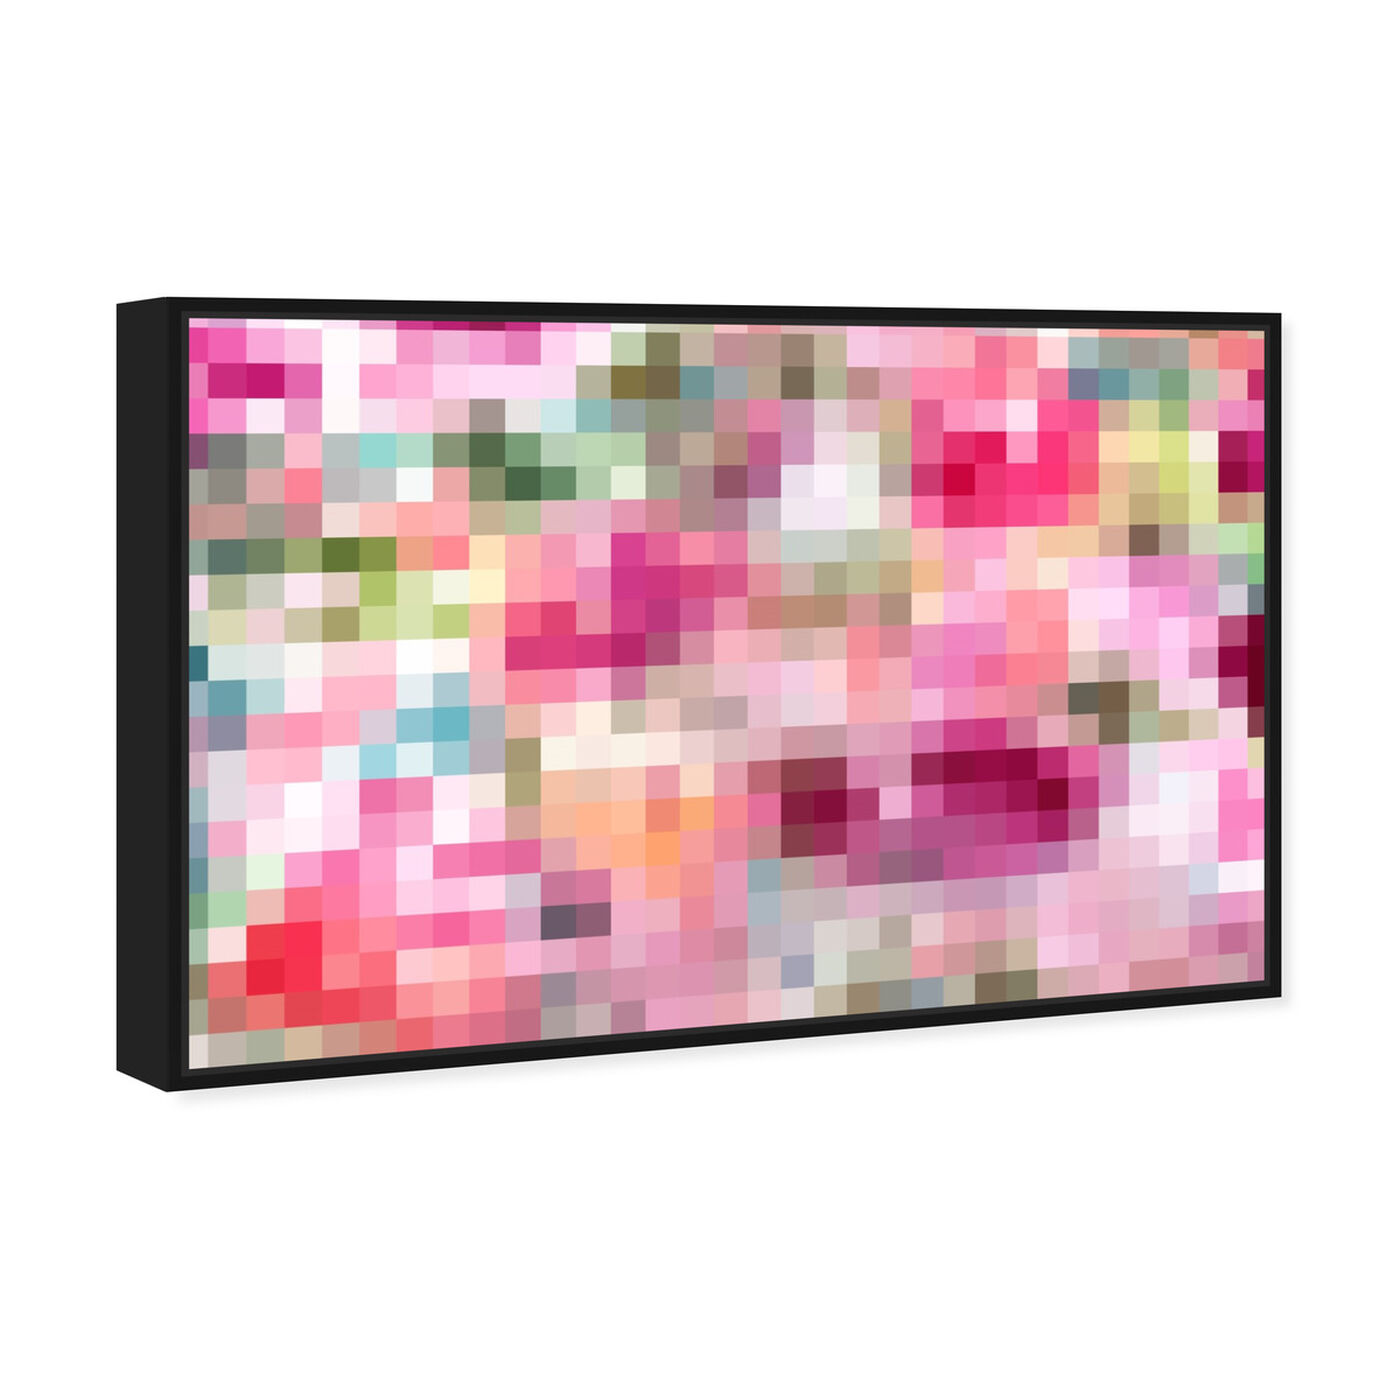 Angled view of Pixel Garden featuring abstract and textures art.